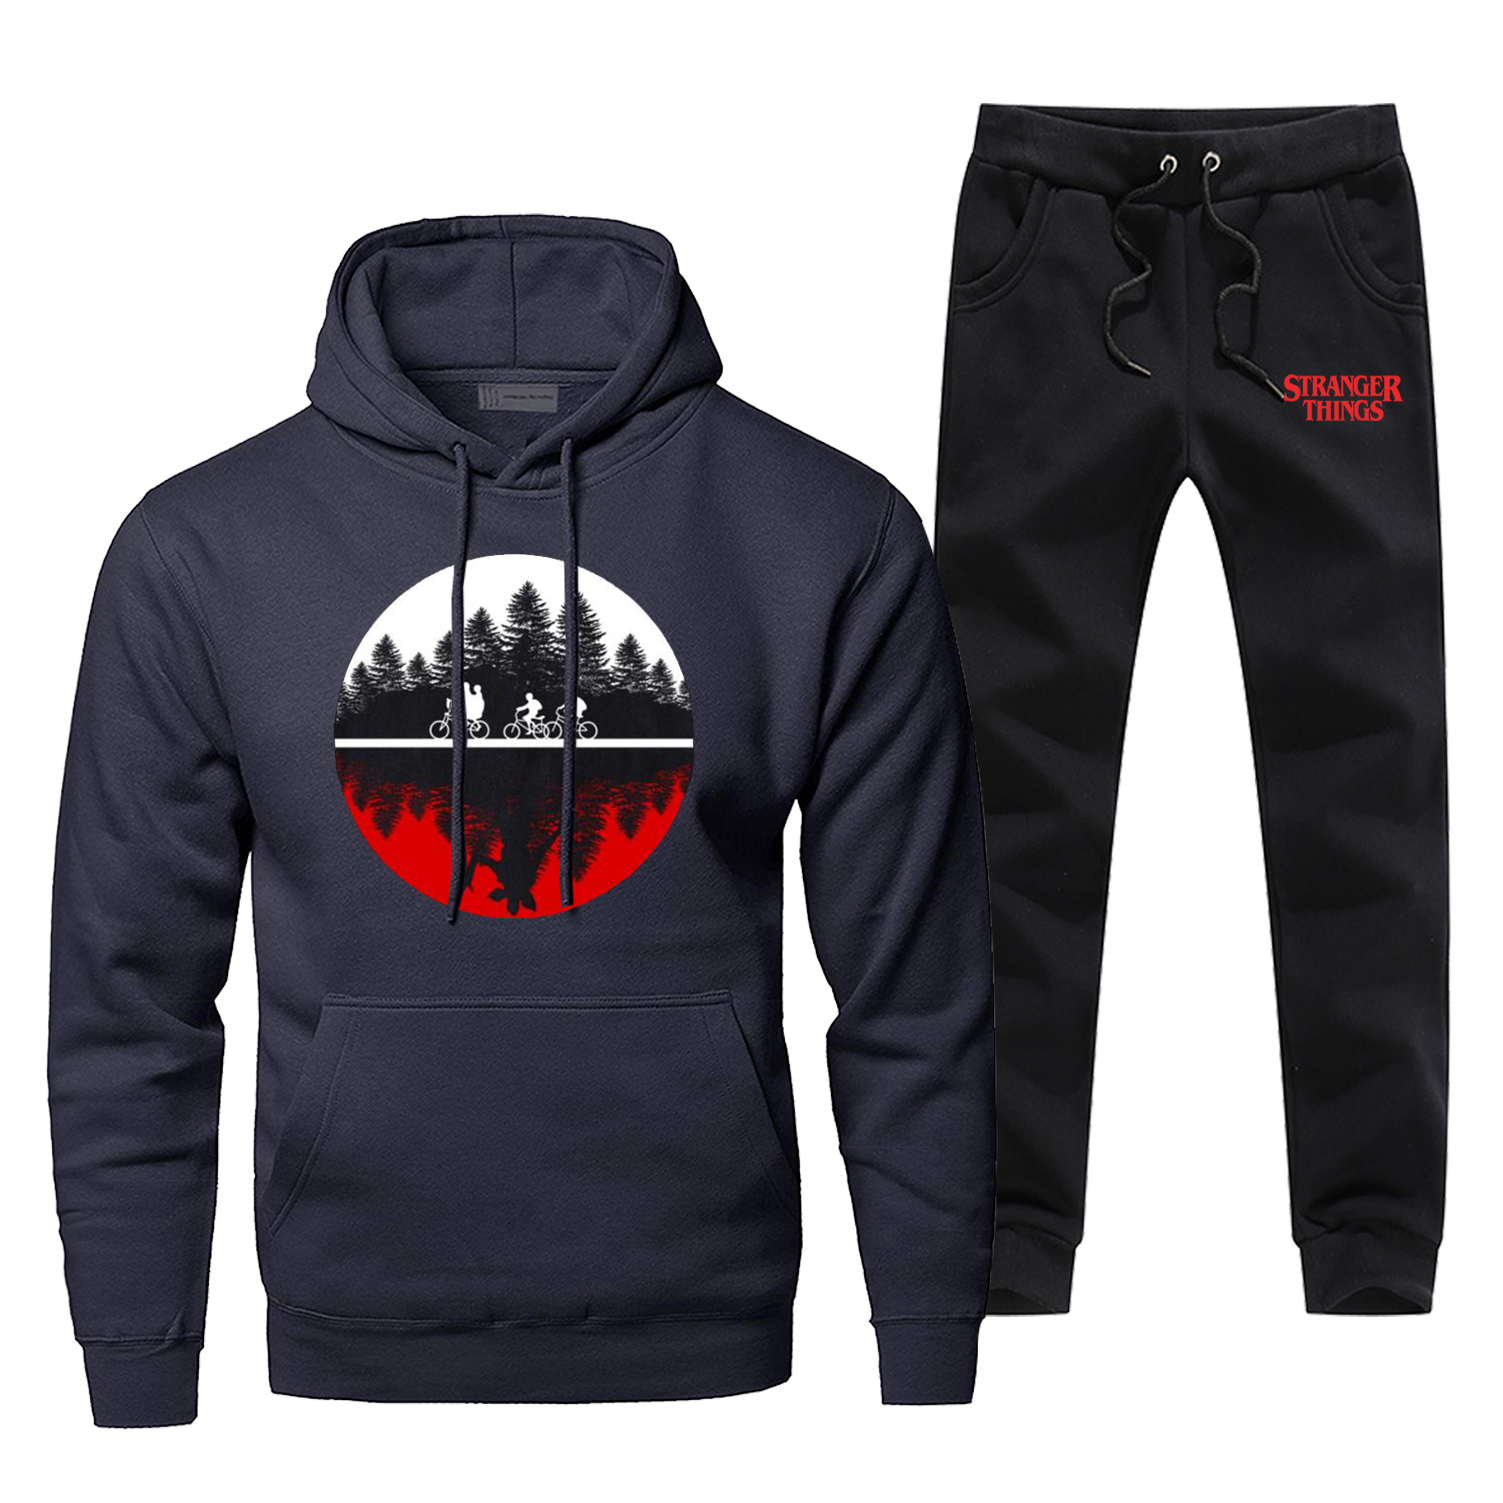 Funny Design Two-worlds Men's Hoodies Pants 2 Piece Sets Hip Hop Sweatshirt Mens Harajuku Streetwear Stranger Things Sportswear